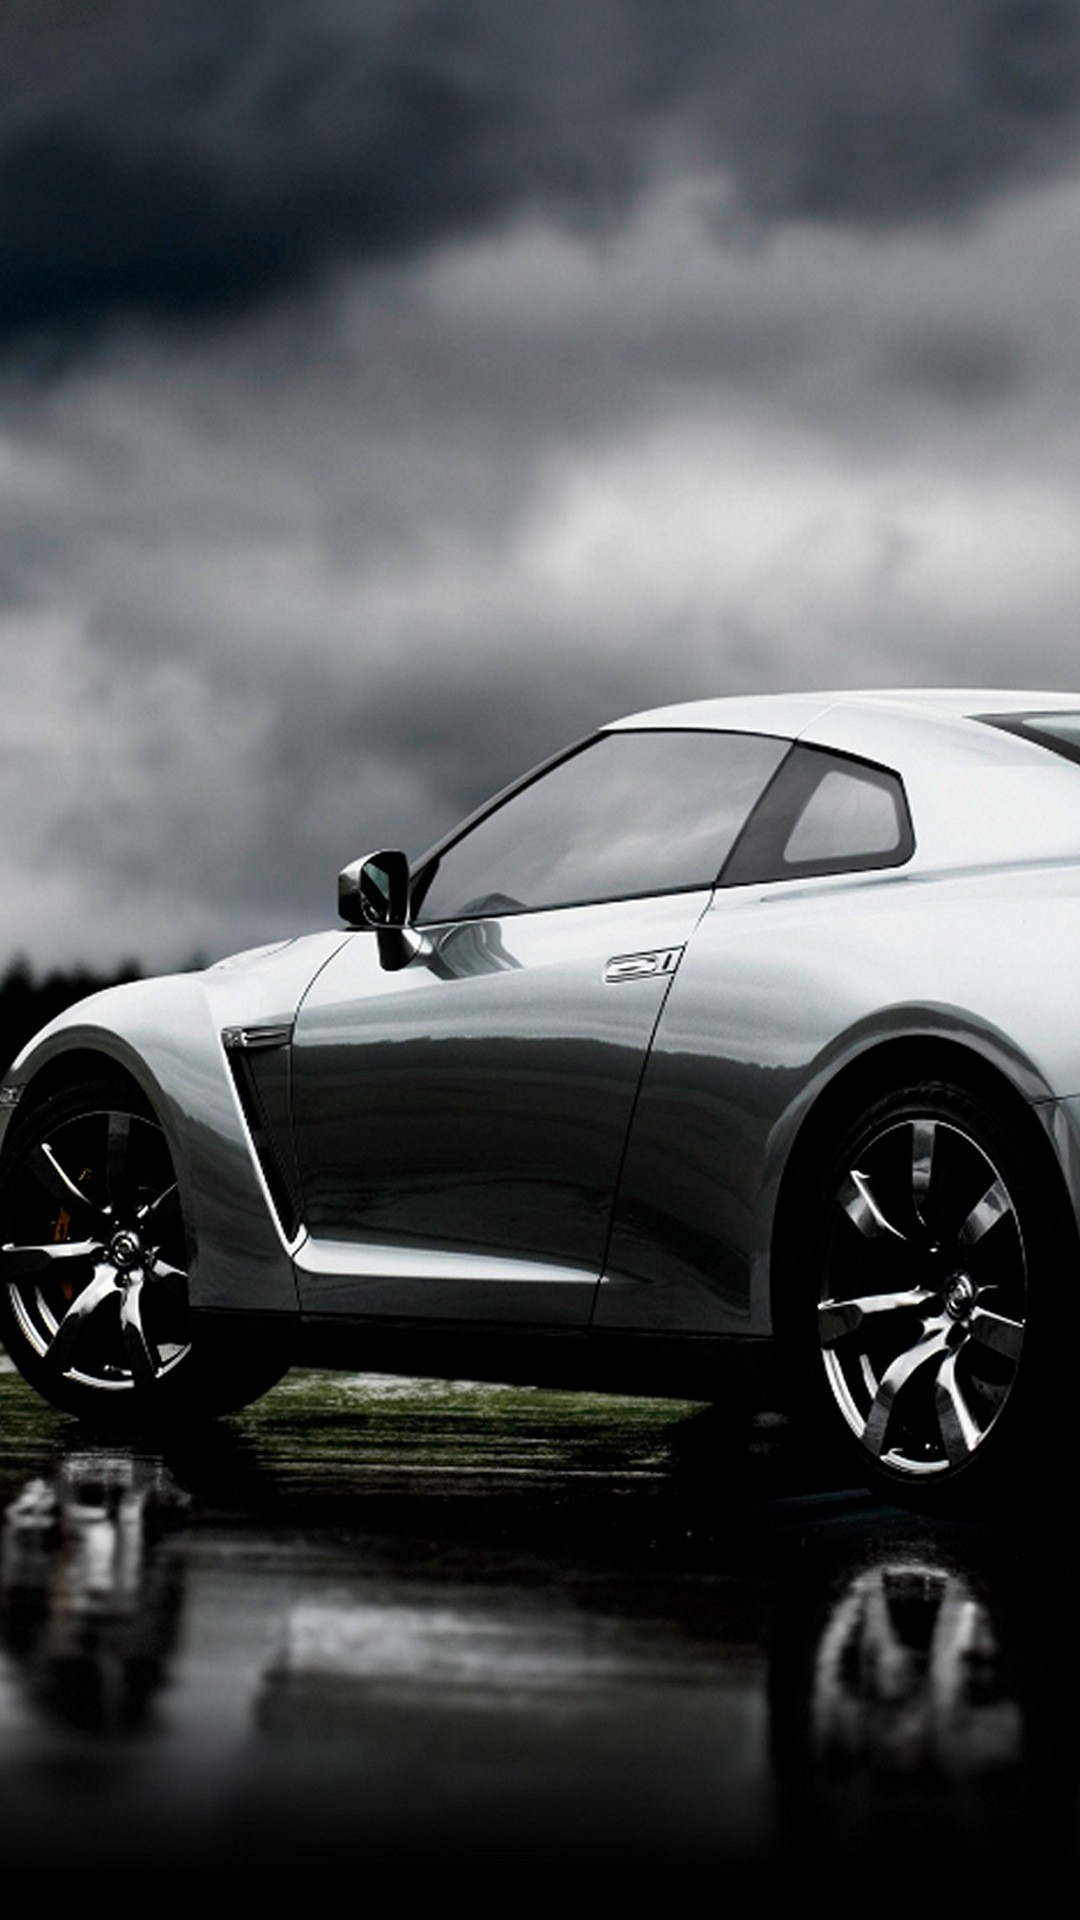 Nissan GT-R Silver Left iPhone 6 Plus HD Wallpaper …